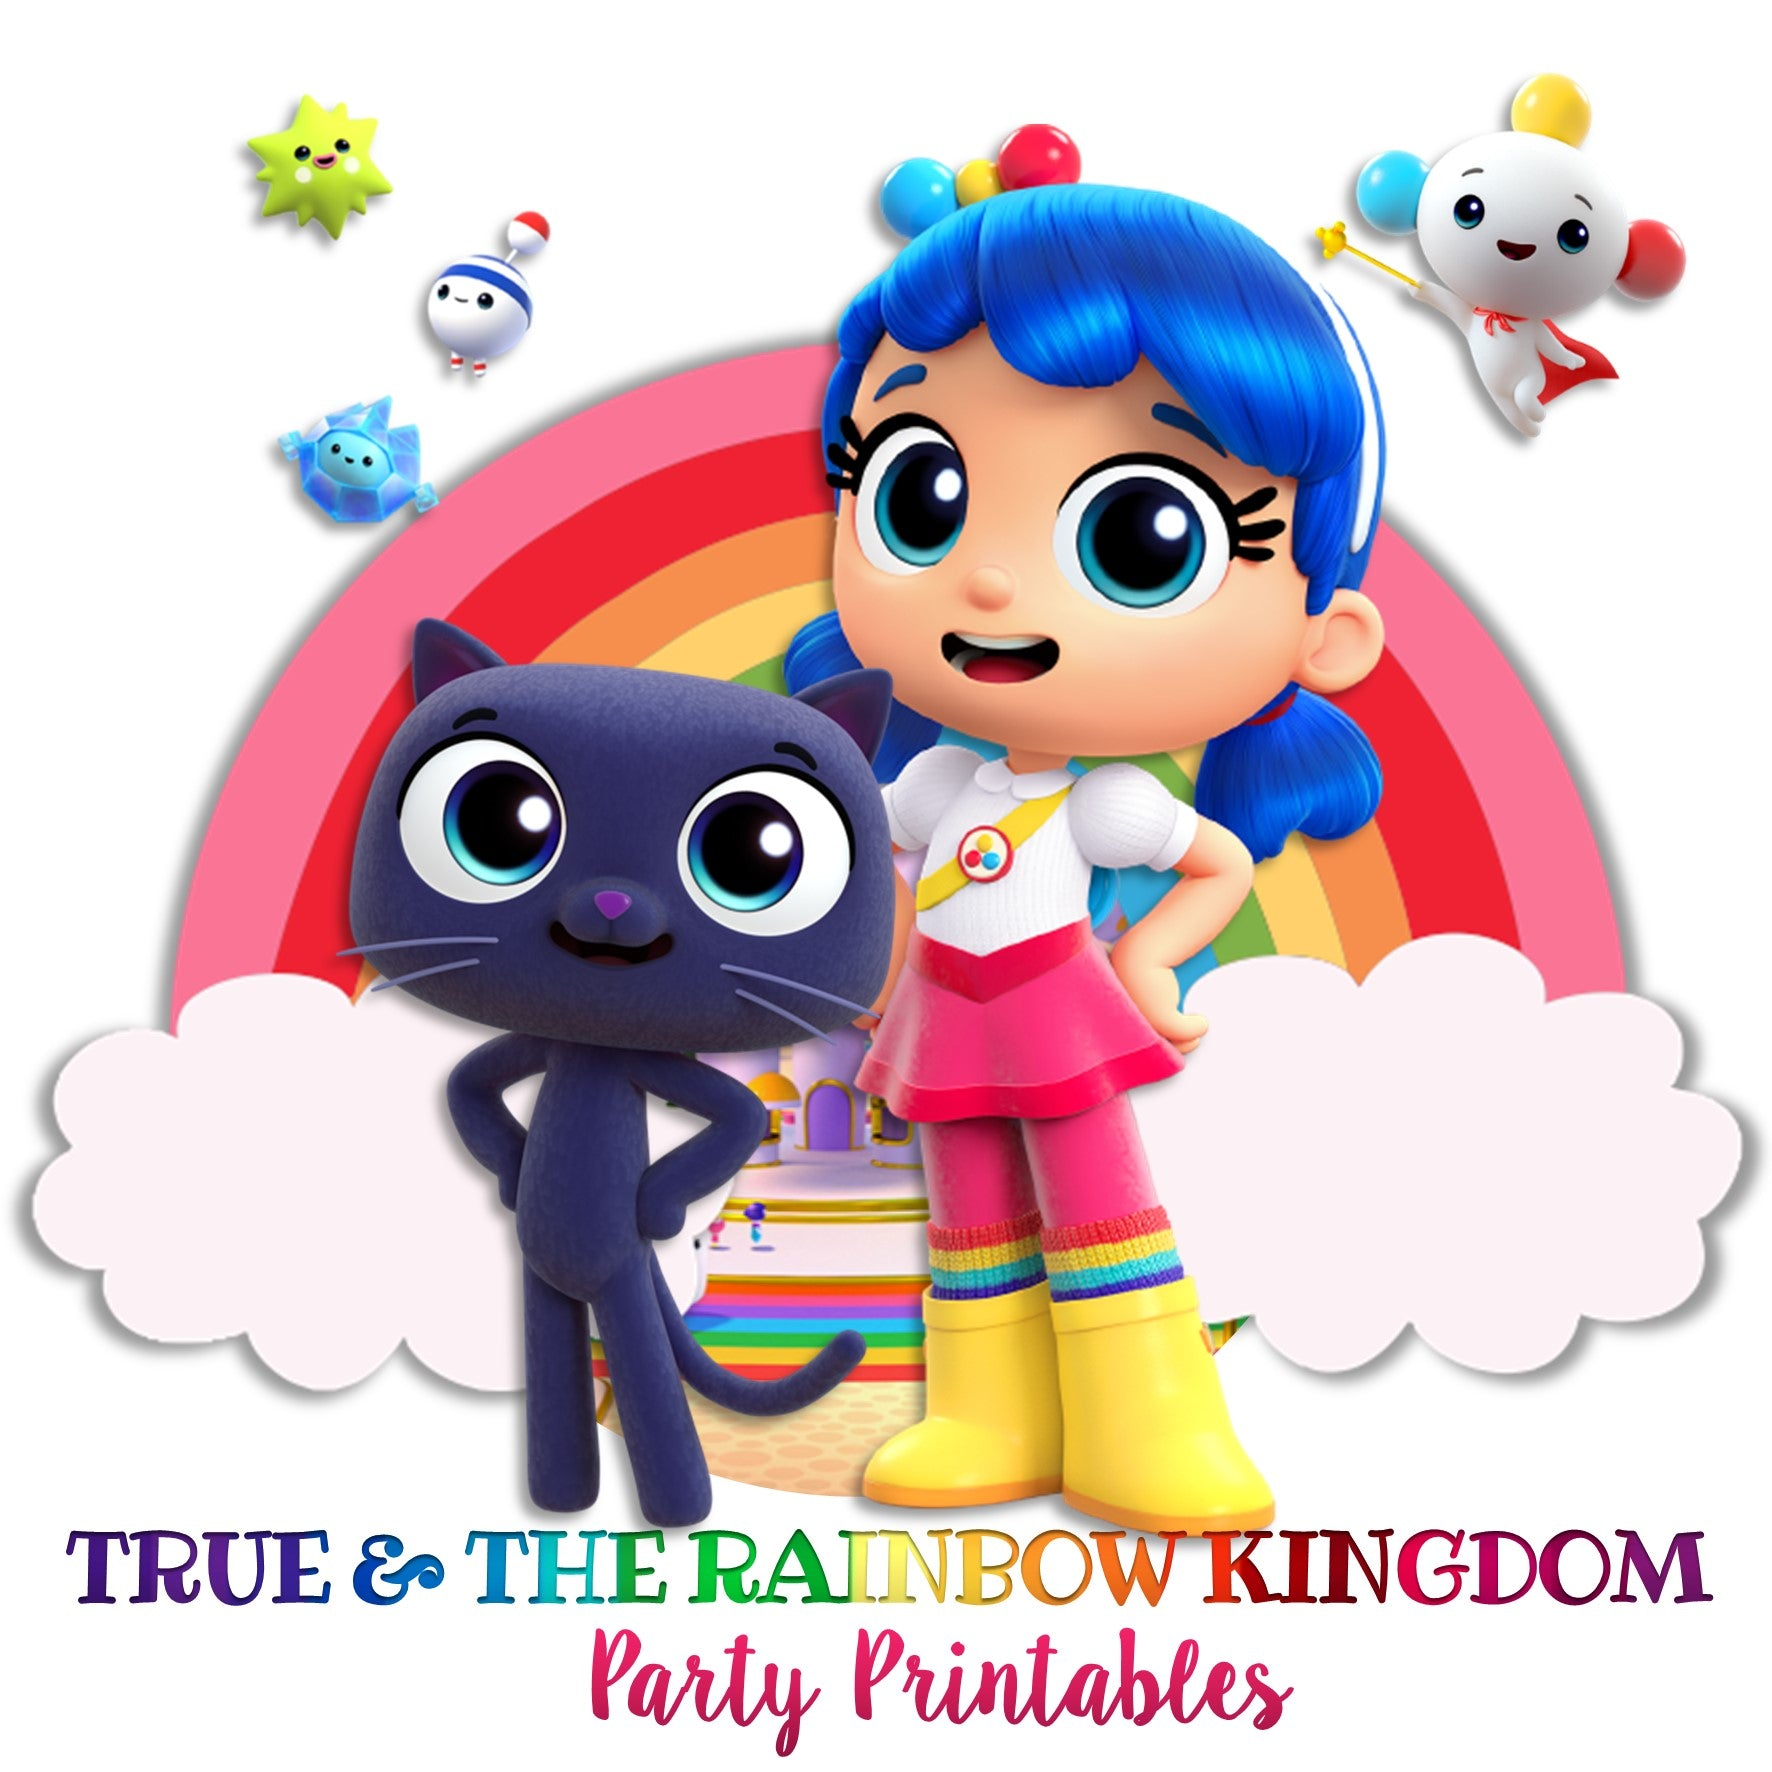 TRUE AND THE RAINBOW KINGDOM INSPIRATION